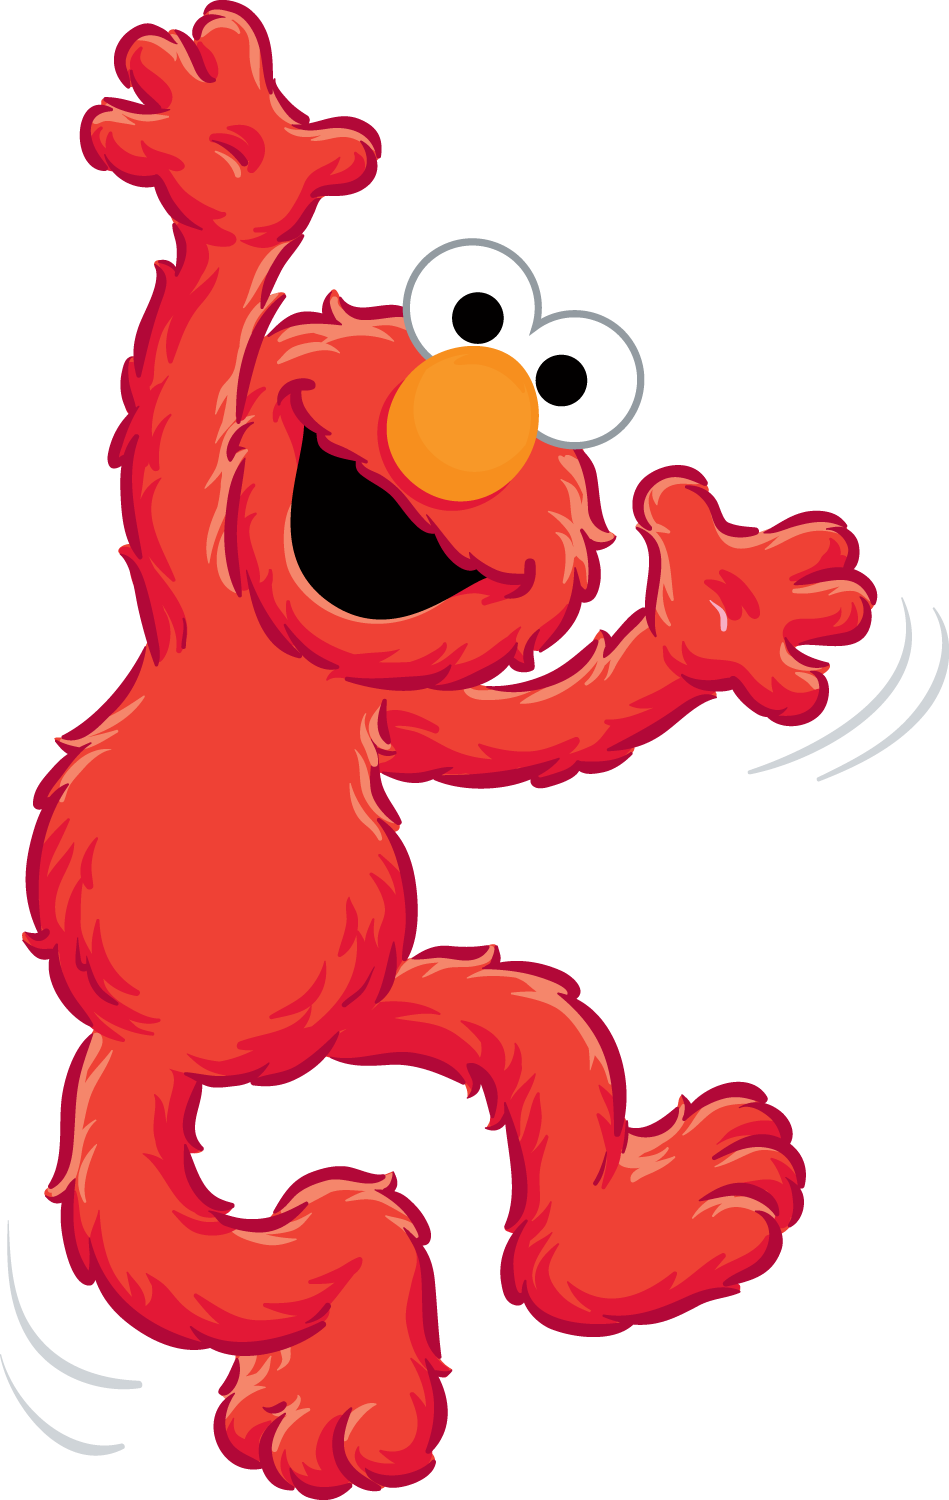 elmo clipart birthday boy